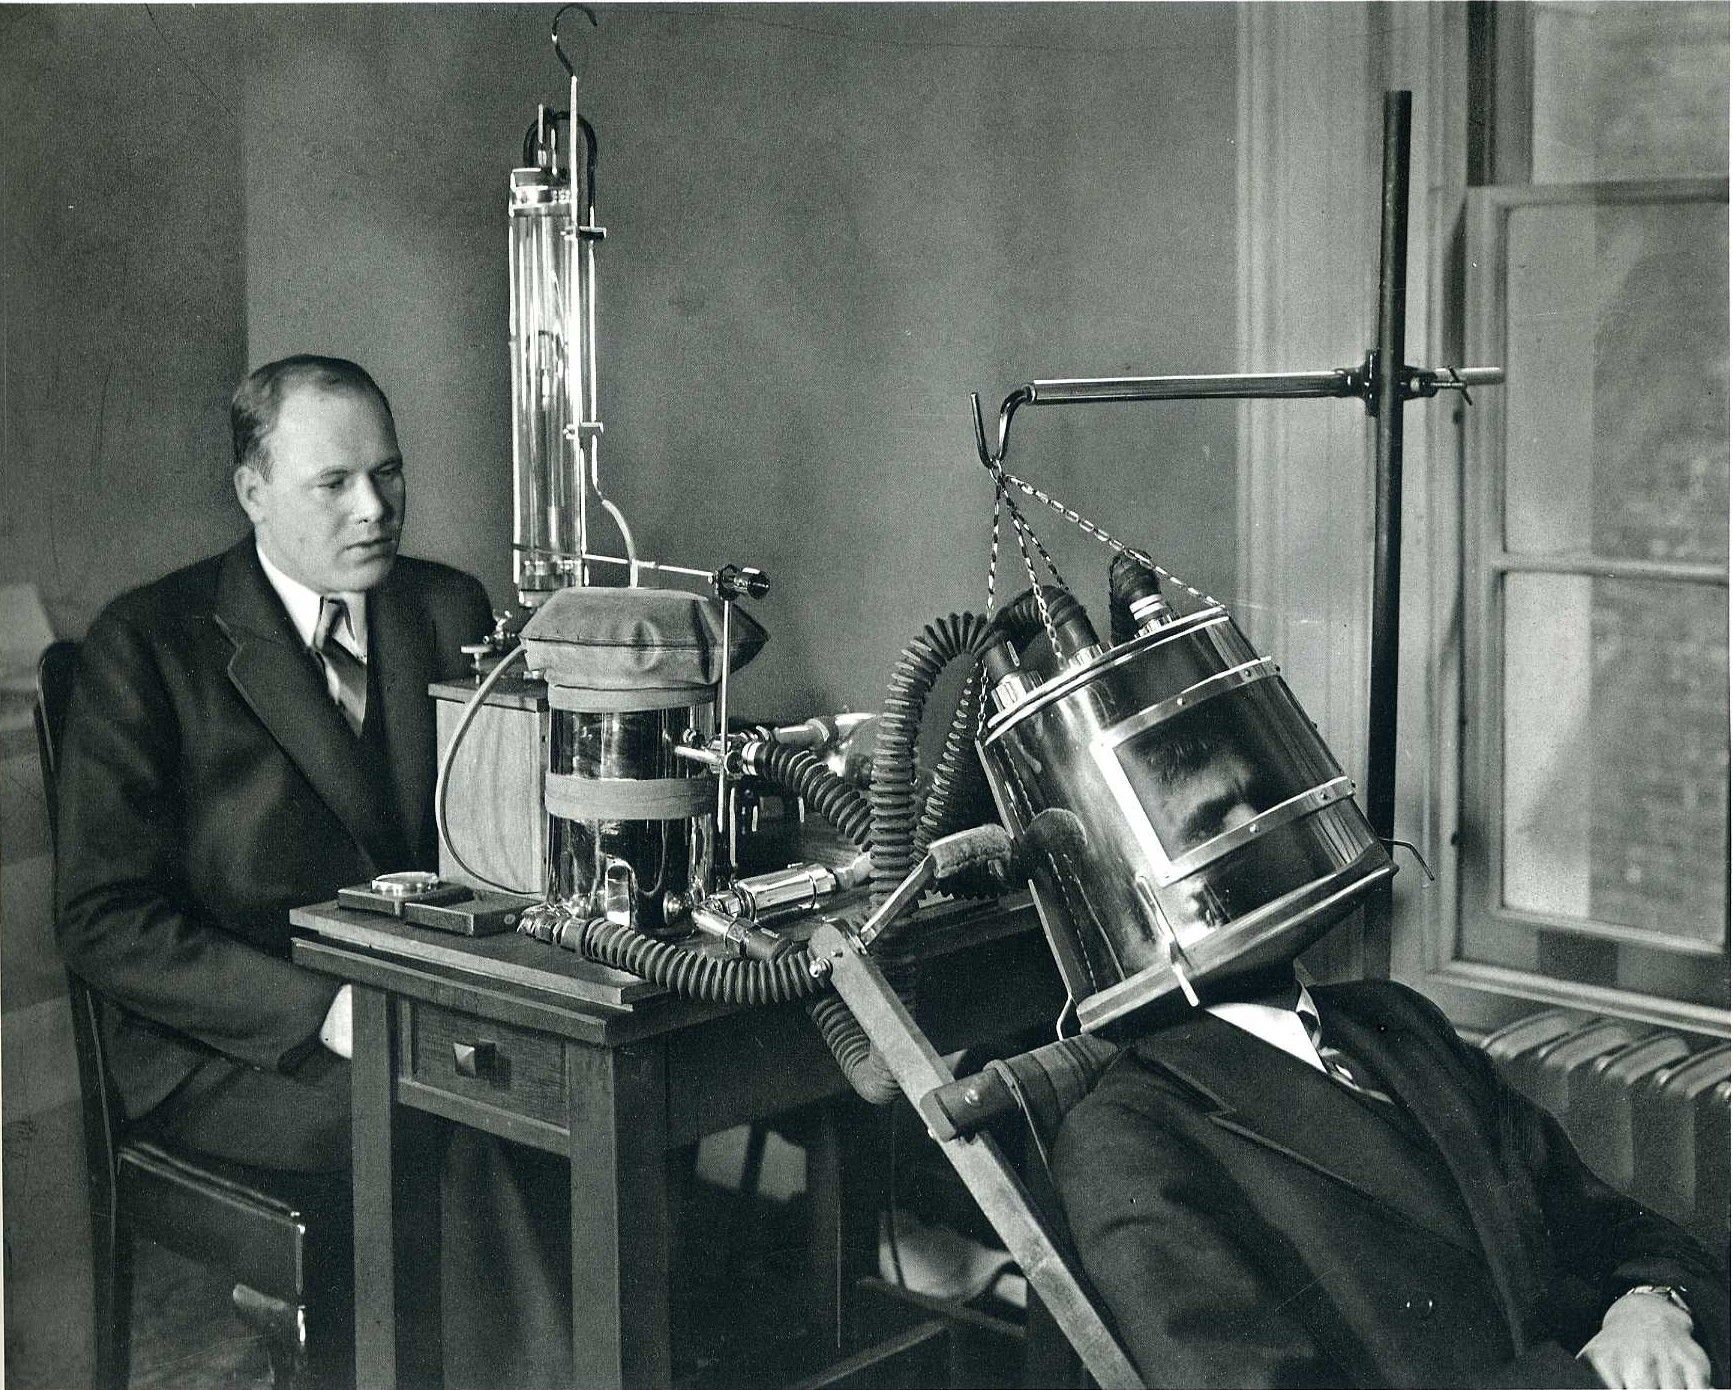 1935: Apparatus for Measuring Metabolism